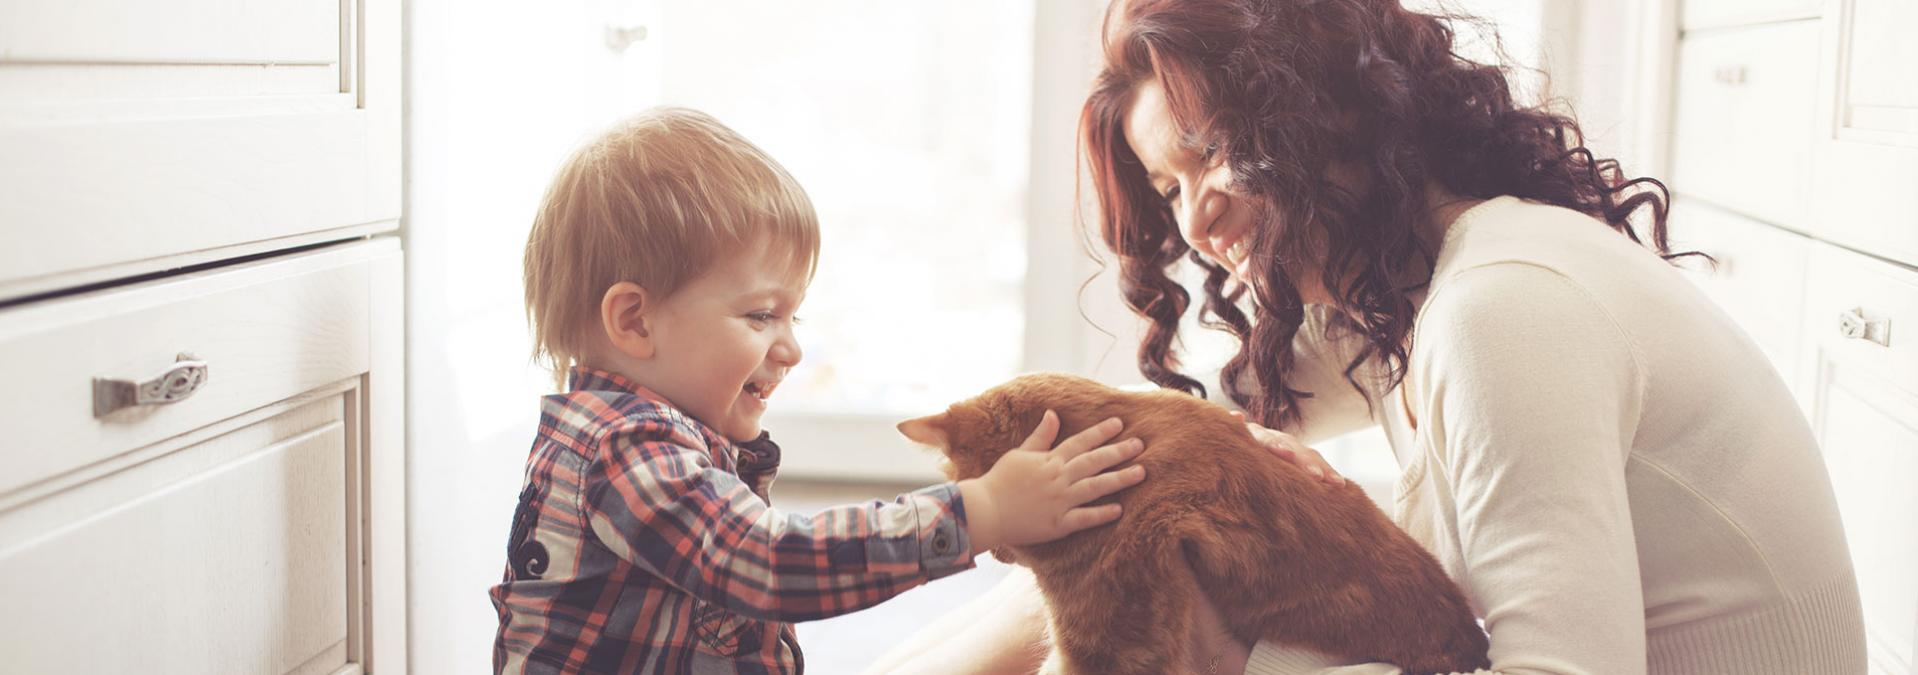 Woman holding cat while kid pets animal